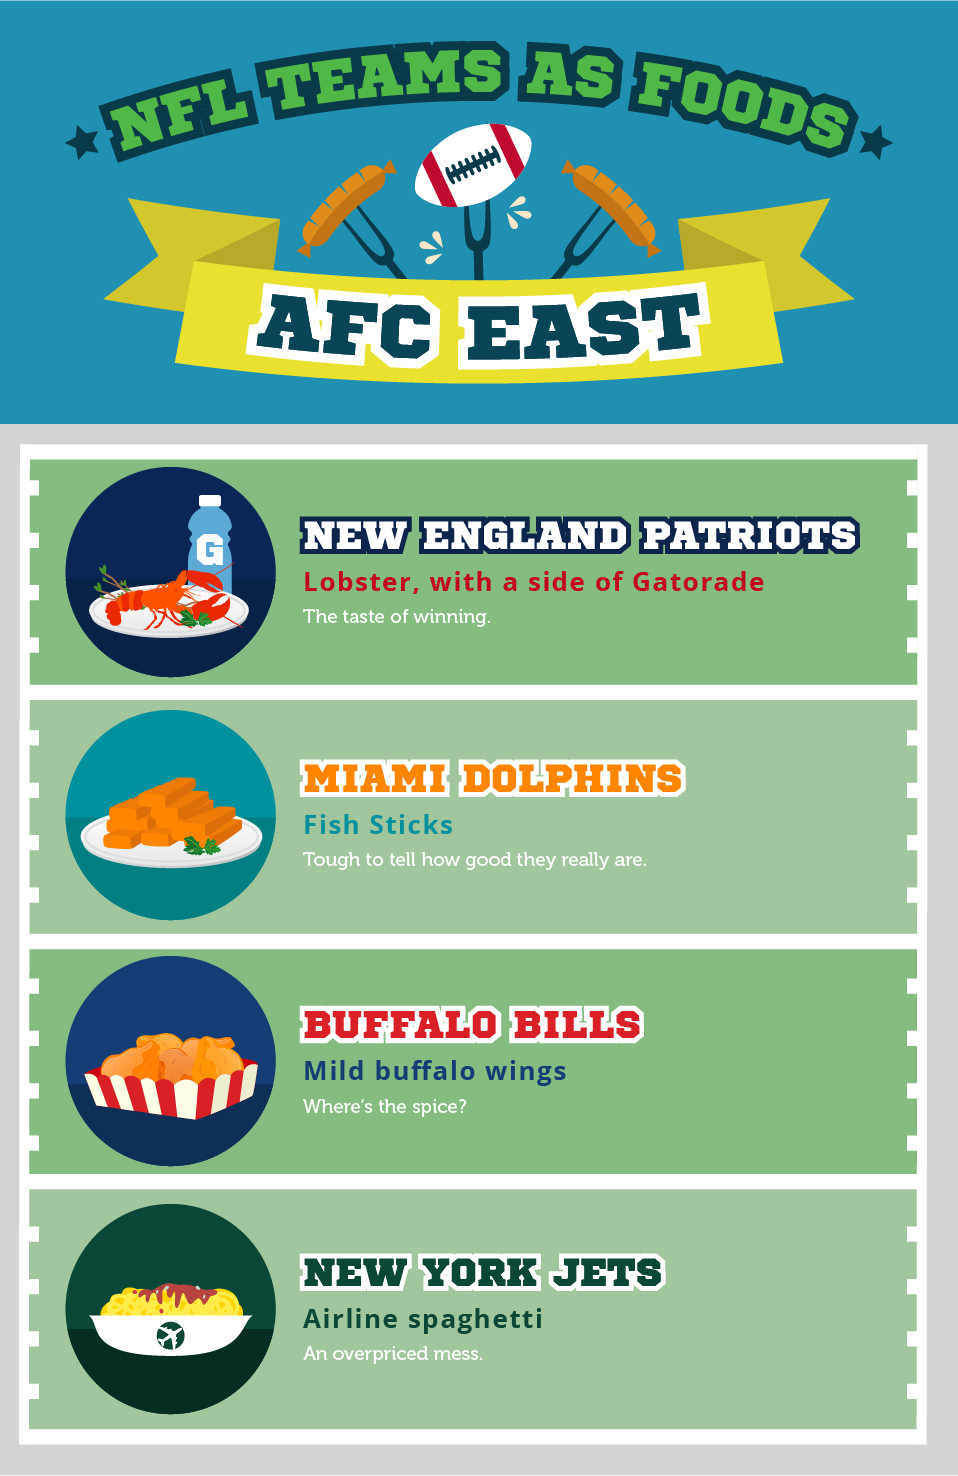 NFL Teams as Food: AFC East